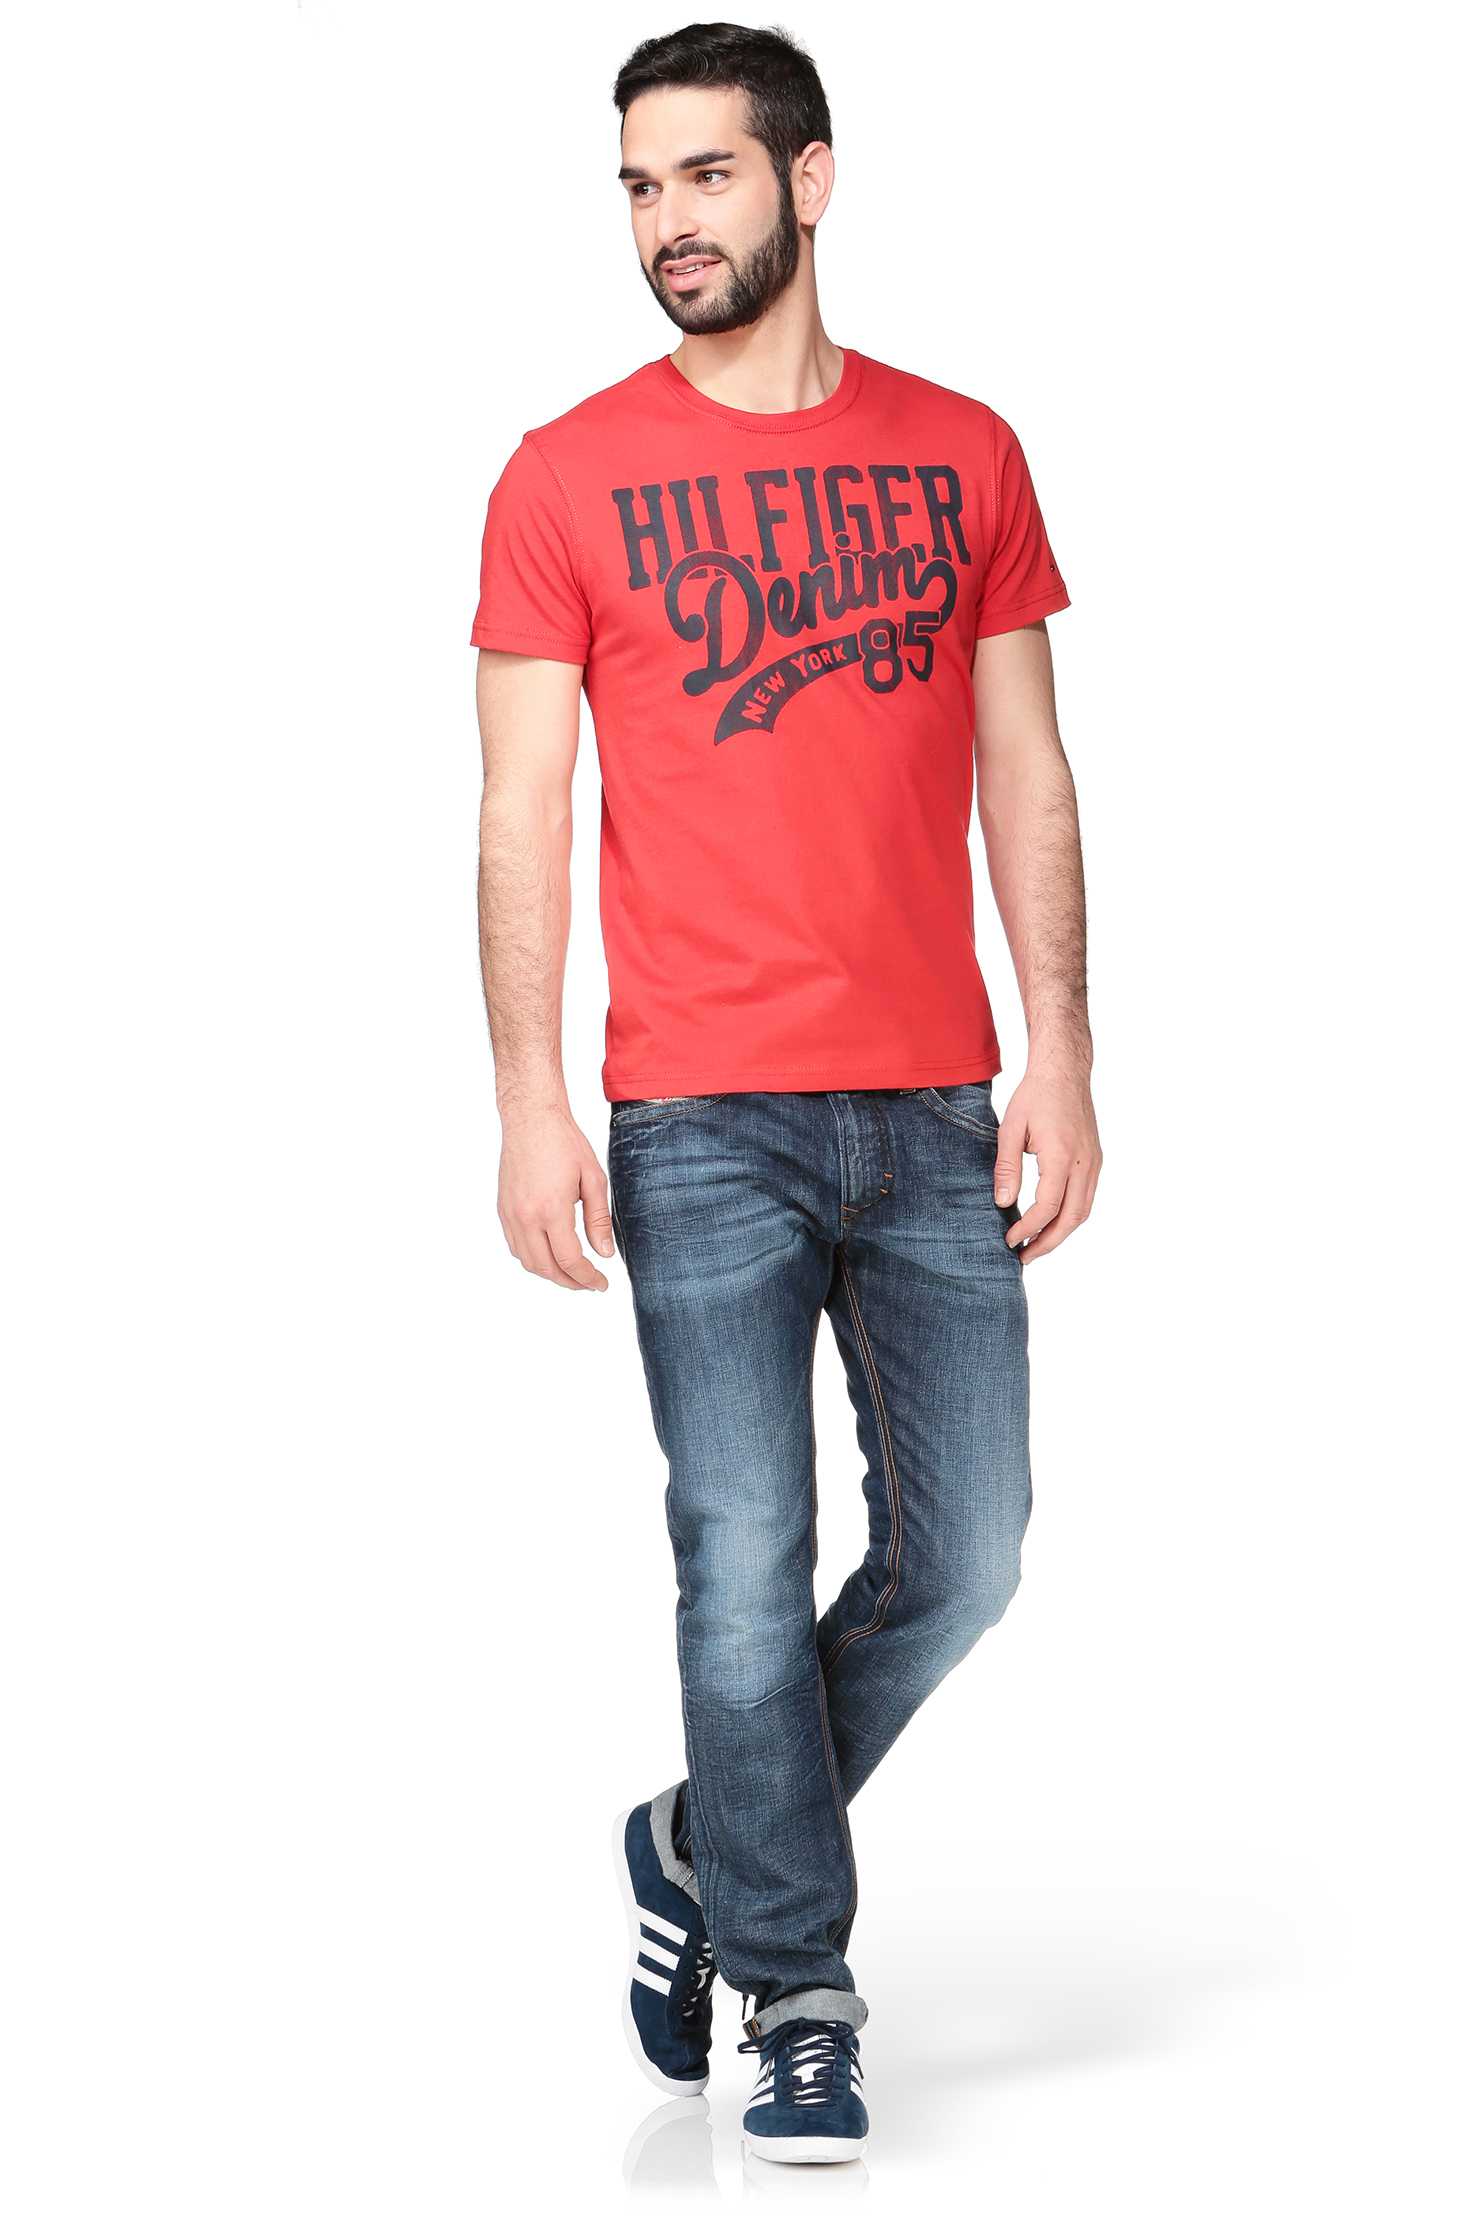 hilfiger denim red short sleeve t shirt 1957881058 hilfiger cn tee ss. Black Bedroom Furniture Sets. Home Design Ideas